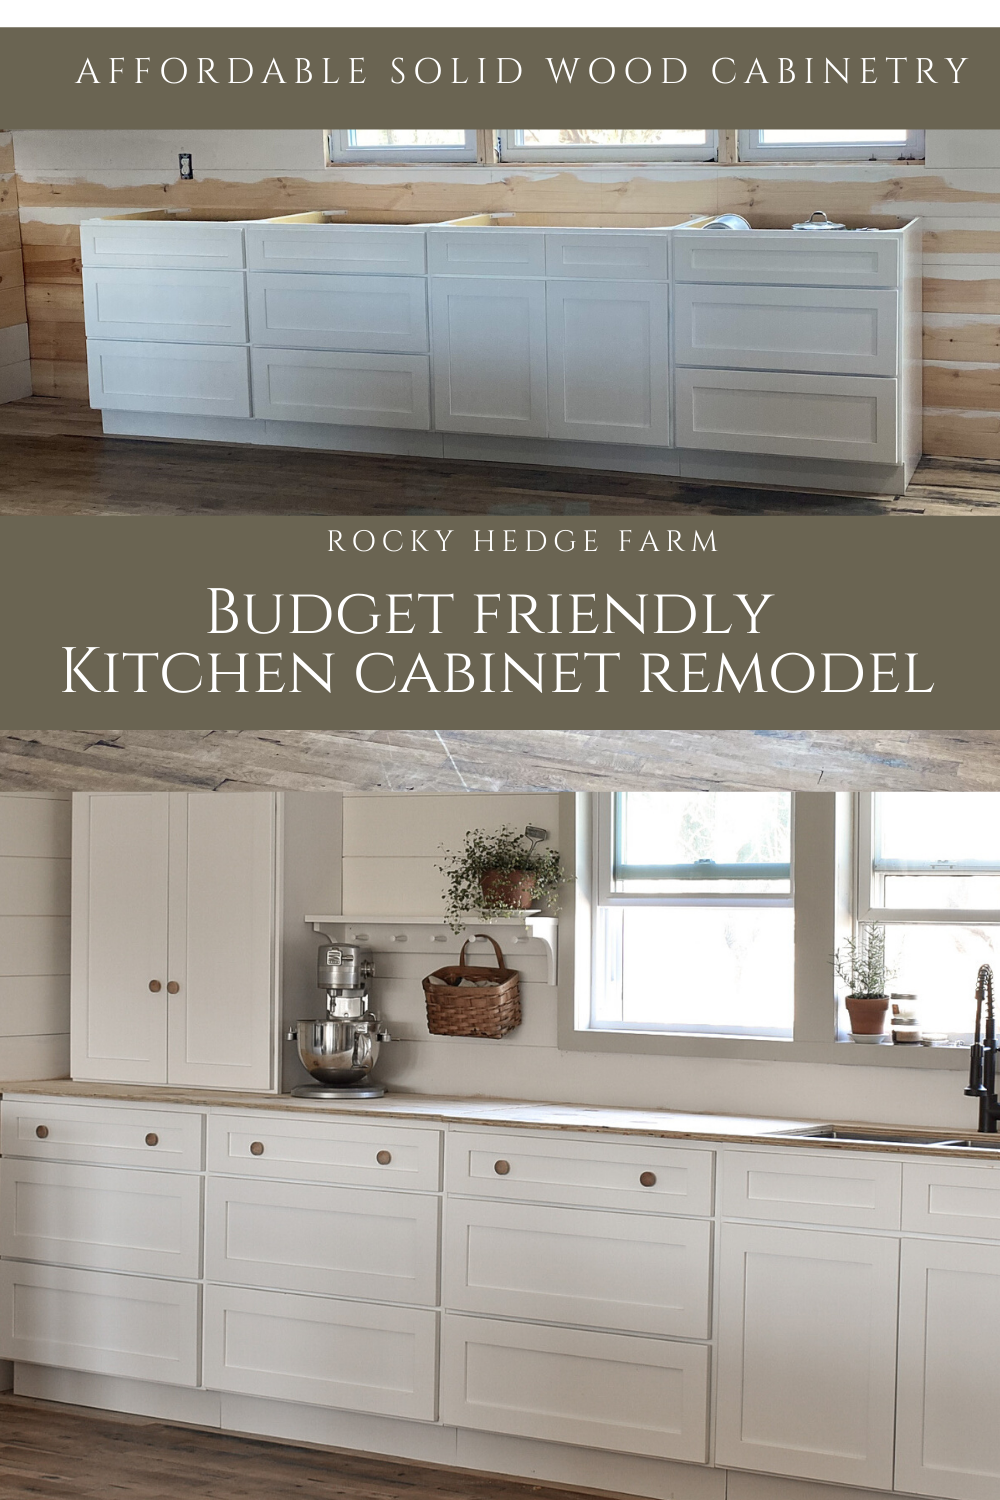 Kitchen Cabinet Remodel On A Budget Rocky Hedge Farm In 2020 Kitchen Cabinet Remodel Solid Wood Kitchen Cabinets Cabinet Remodel